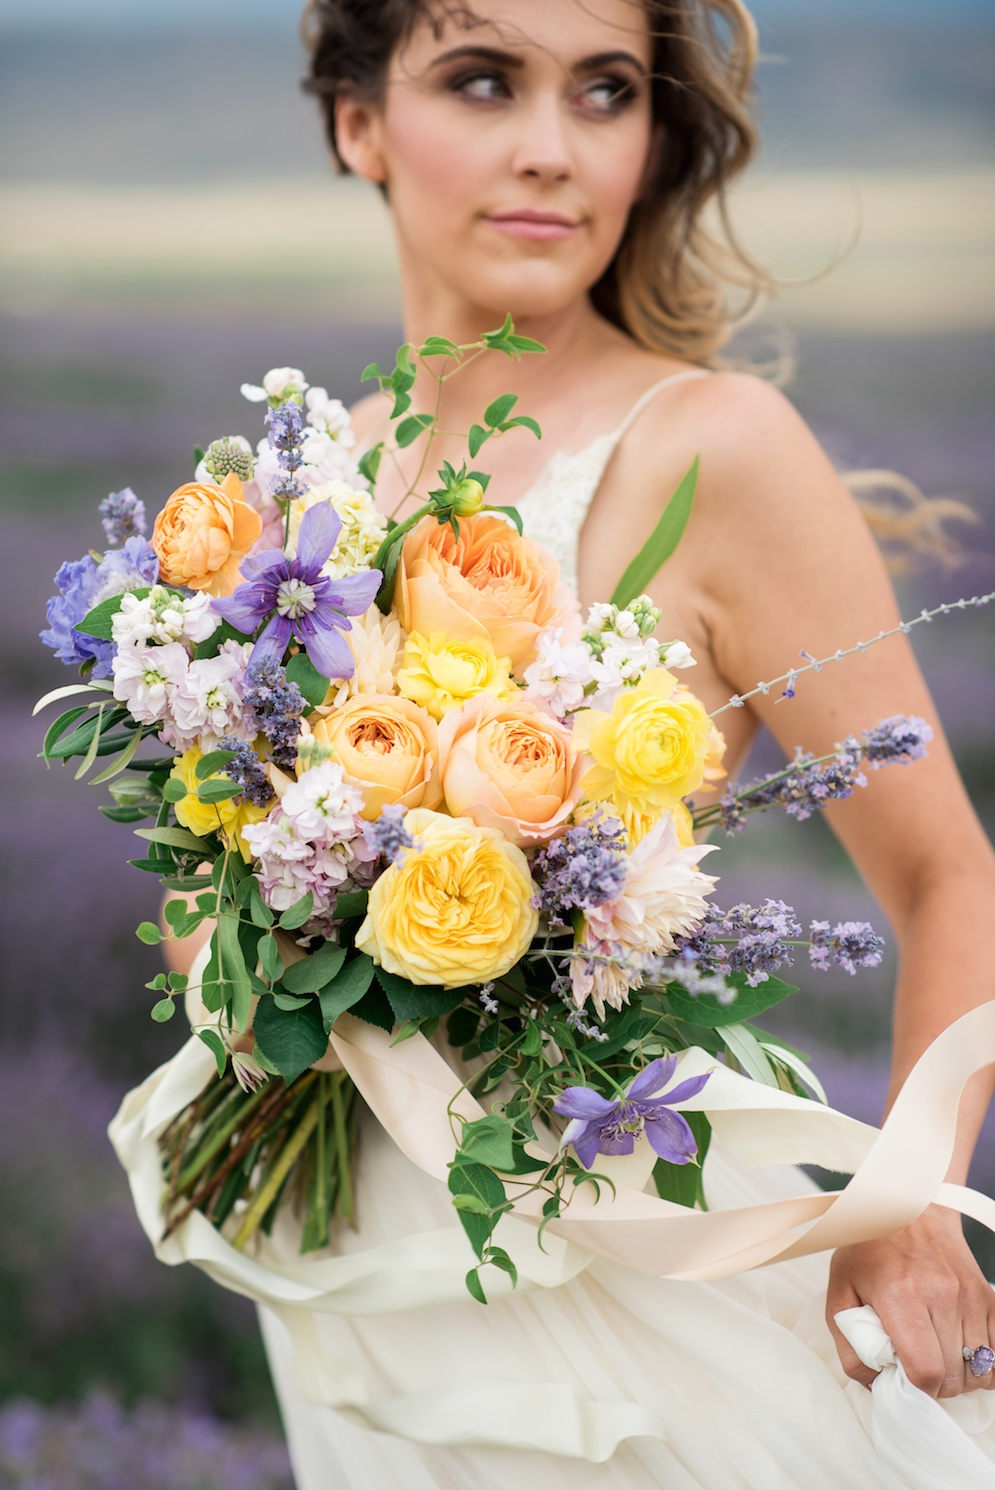 South of France Wedding, lavender field wedding, lavender wedding ideas, lavender inspired wedding, wedding flowers utah calie rose, stunning summer wedding bouquets, yellow peach lavender wedding bouquet ideas